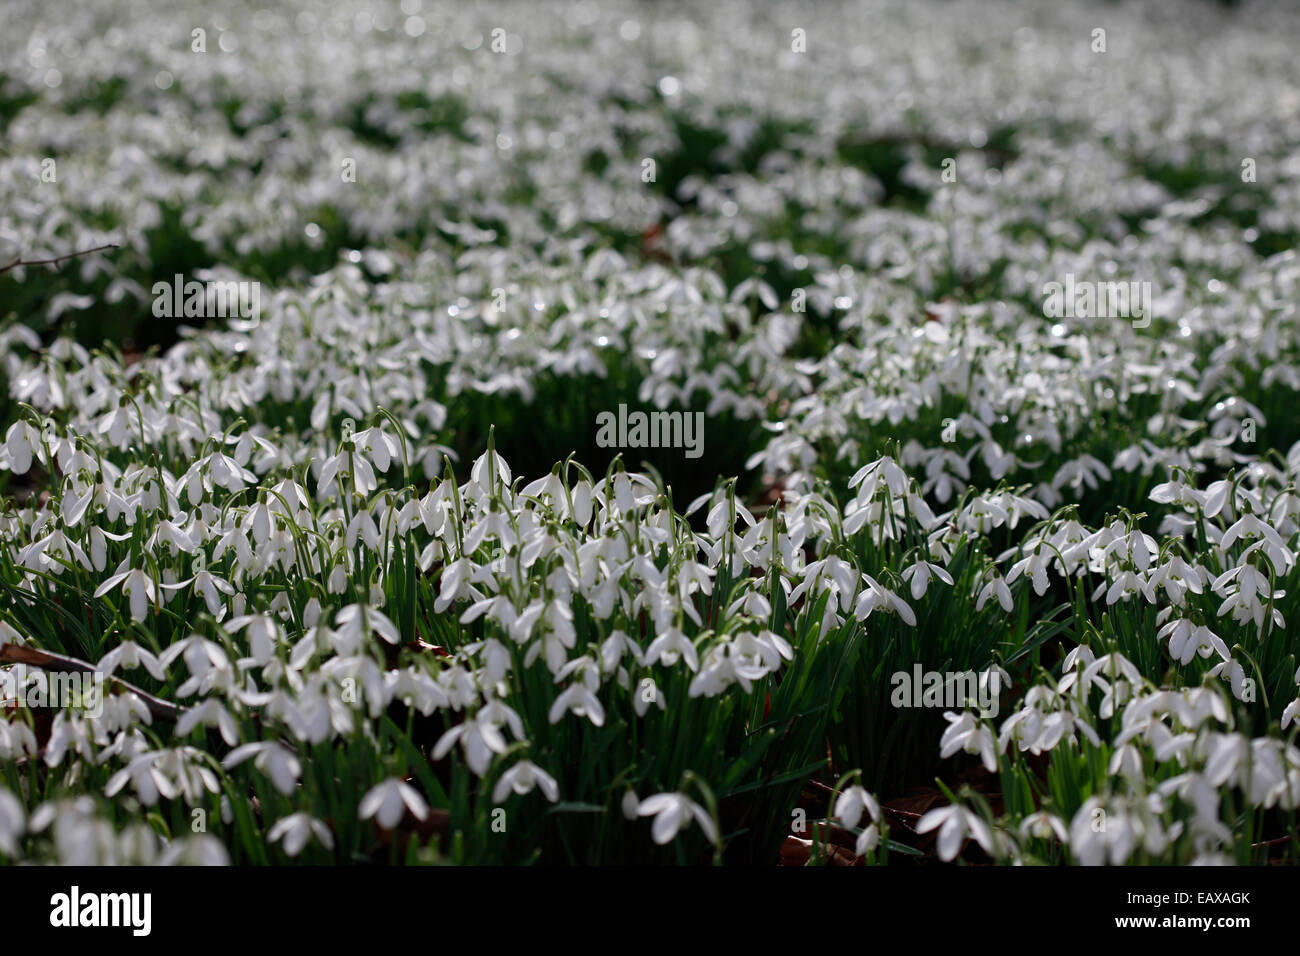 one of many snowdrops on a beech tree woodland forest floor Jane Ann Butler Photography JABP1188 - Stock Image